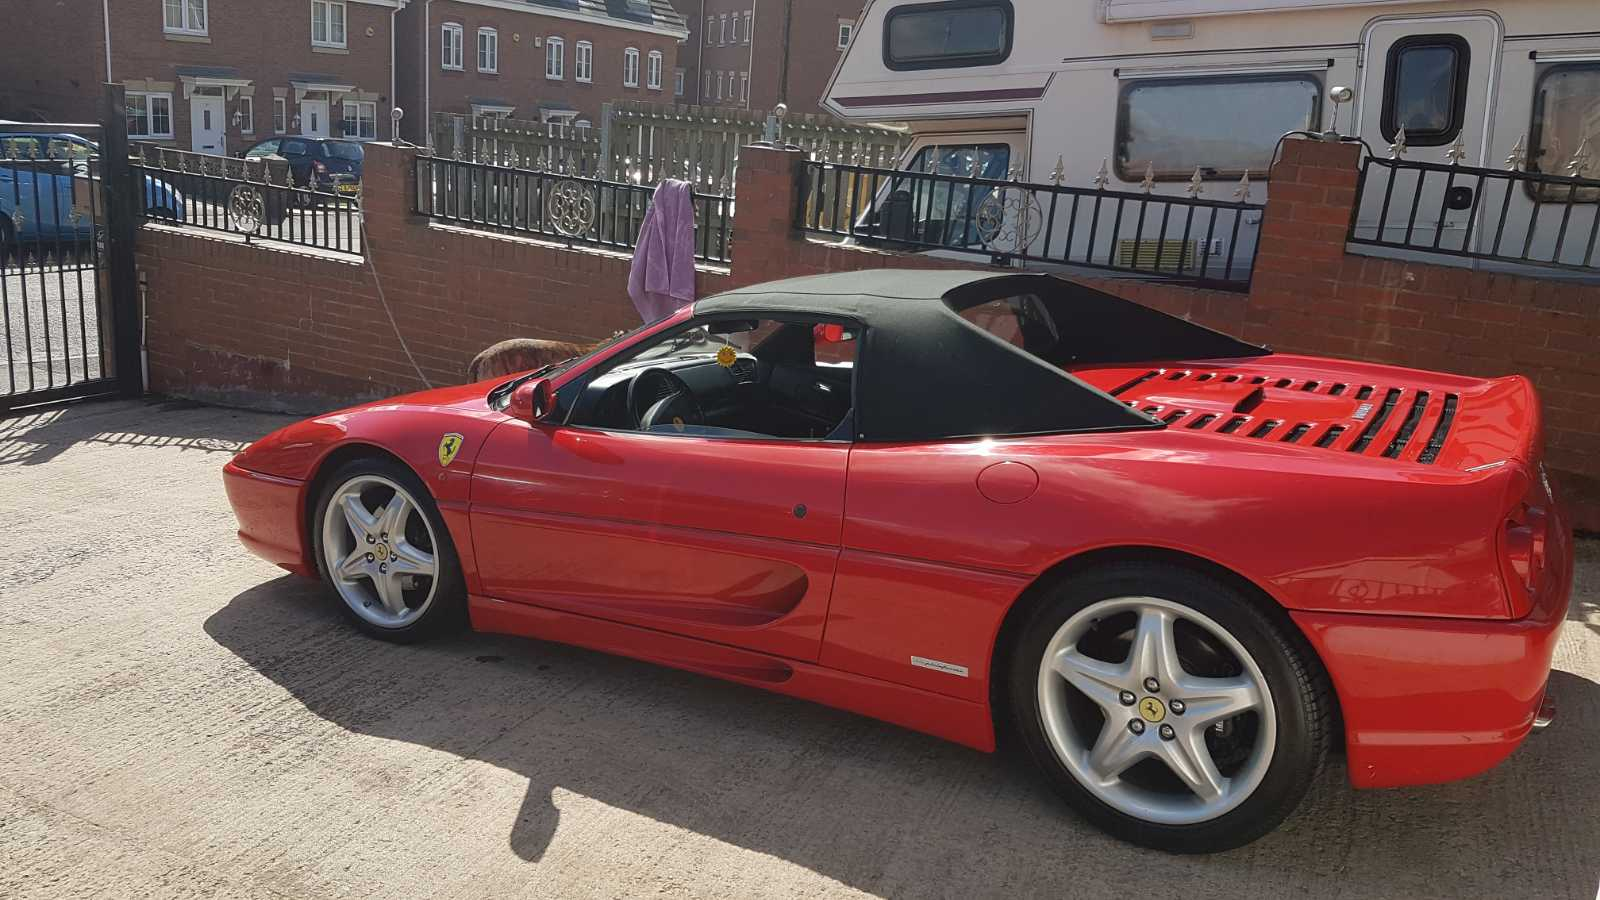 One of the Ferrari's we have on offer